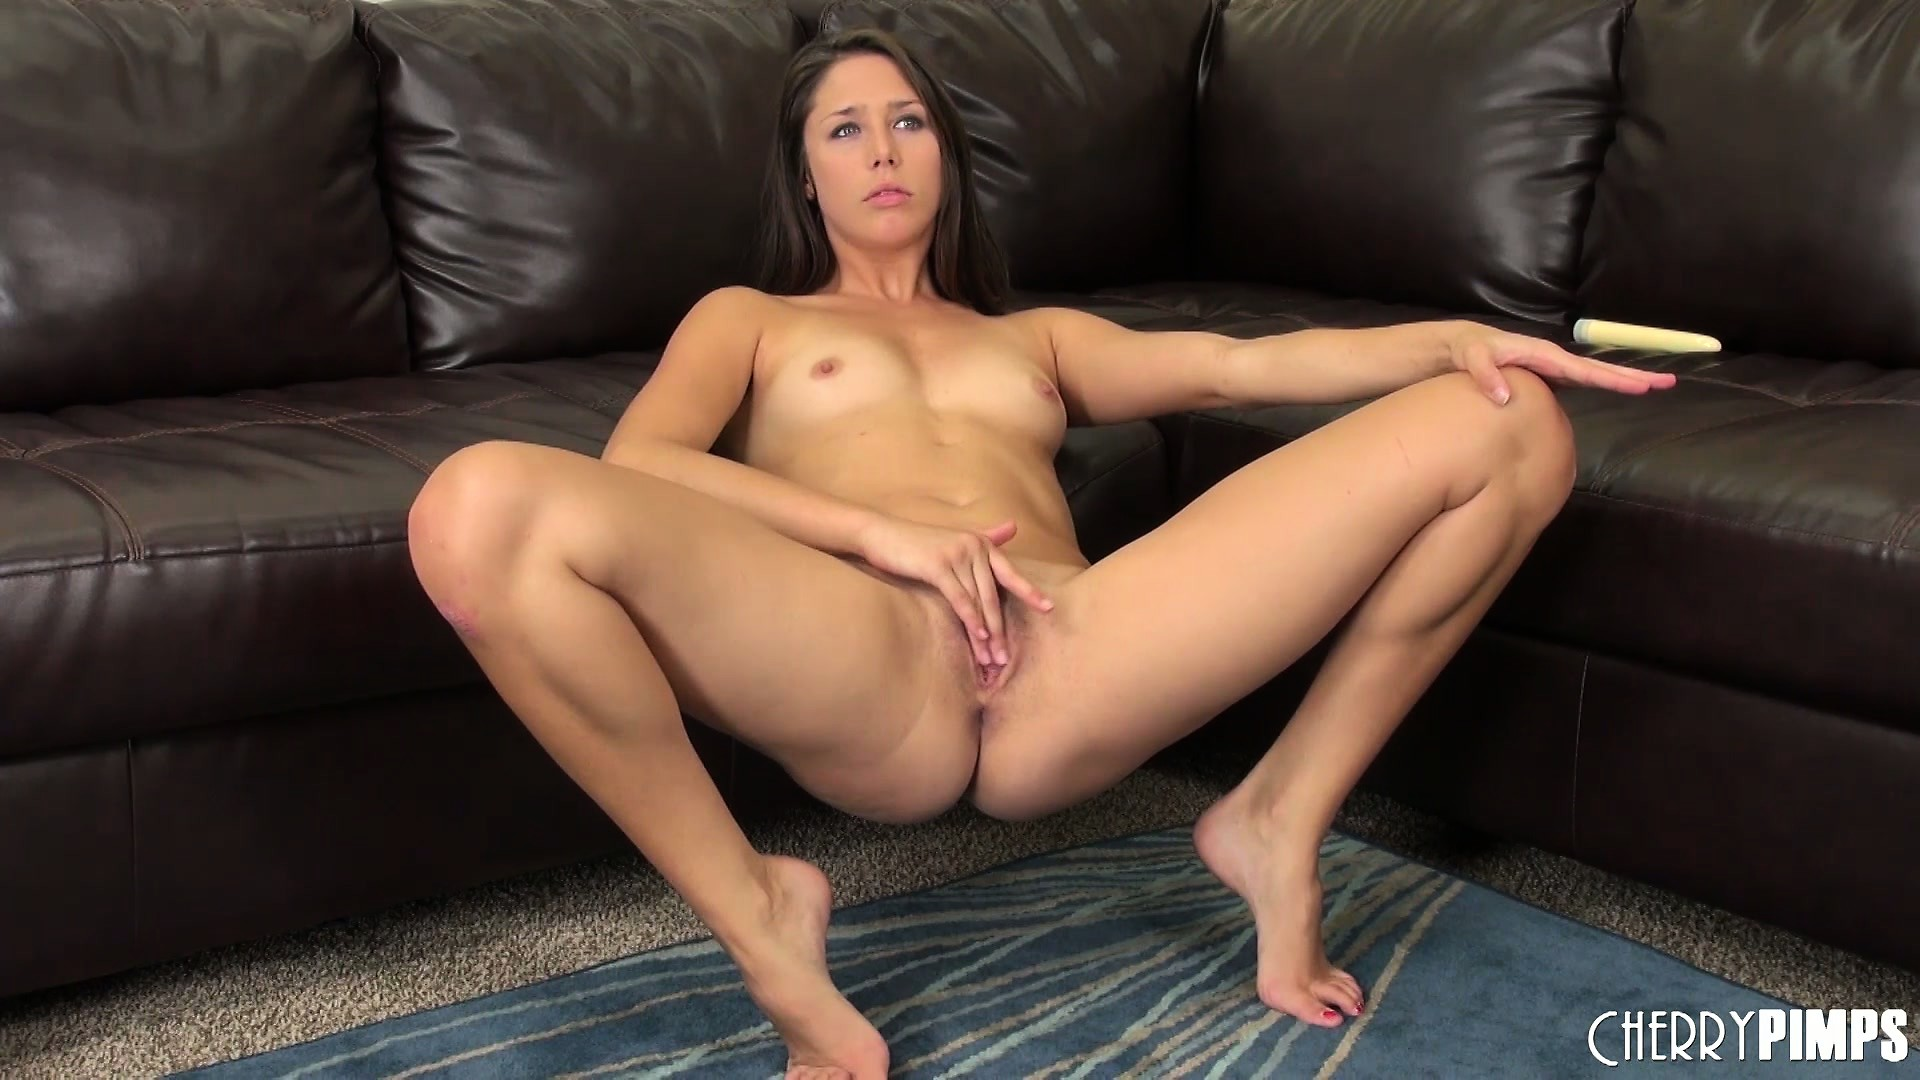 Porno Video of Hot Brunette Cutie, Anna Morna, Makes A Juicy Mess Of Her Pussy